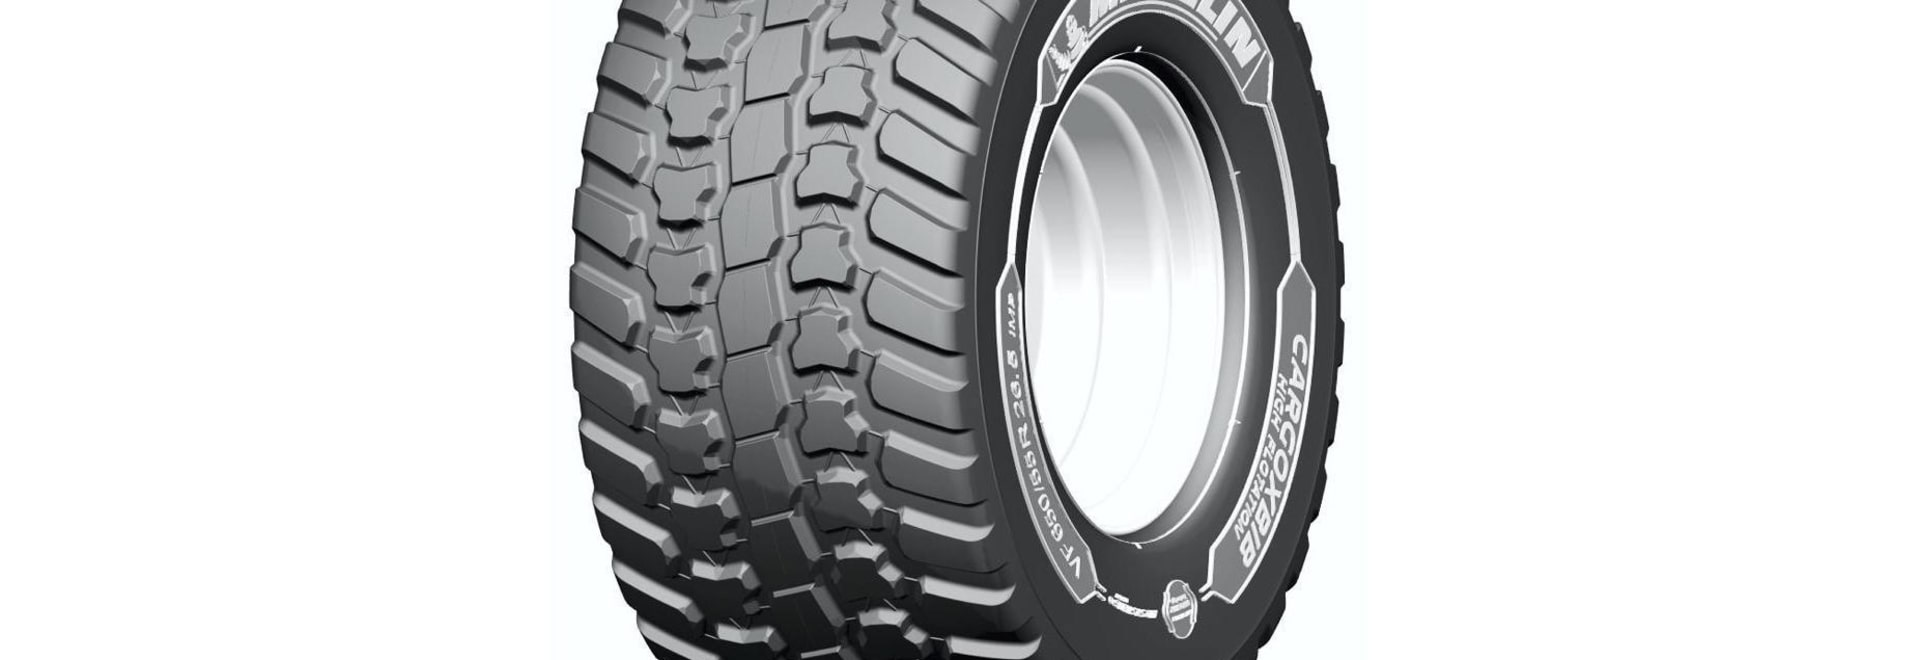 Michelin to introduce new high flotation tyre for trailers, spreaders and slurry tankers